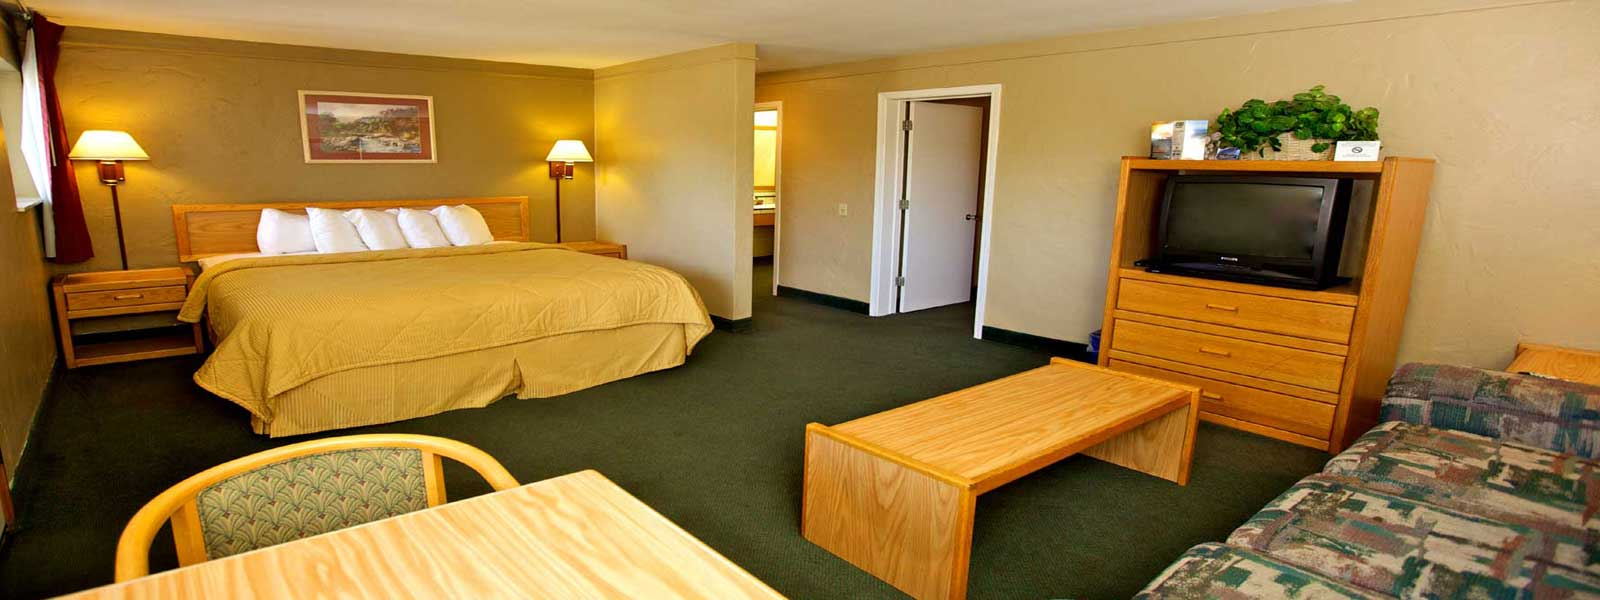 Lamplighter Inn Downtown SLO Affordable Lodging in San Luis Obispo Budget Downtown